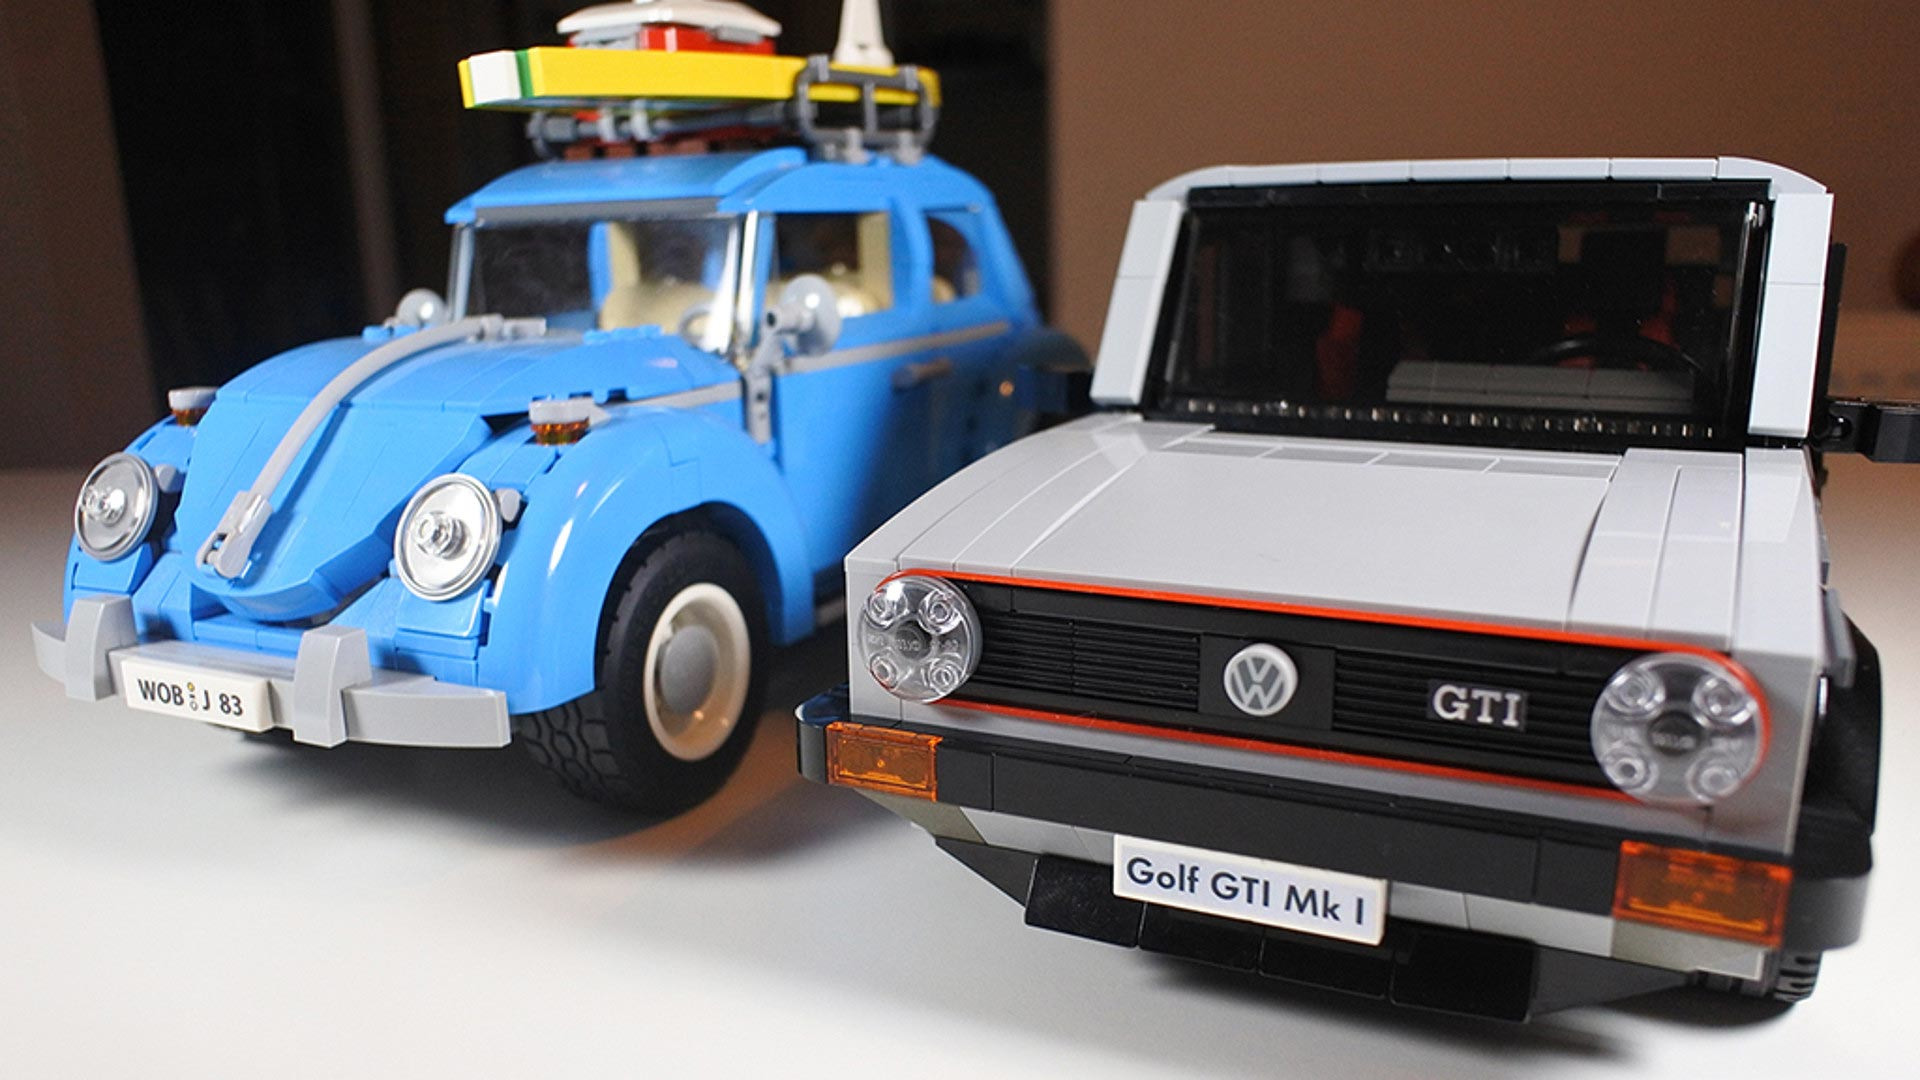 Lego Volkswagen Golf Gti Mk1 Is The Ultimate Retro Toy